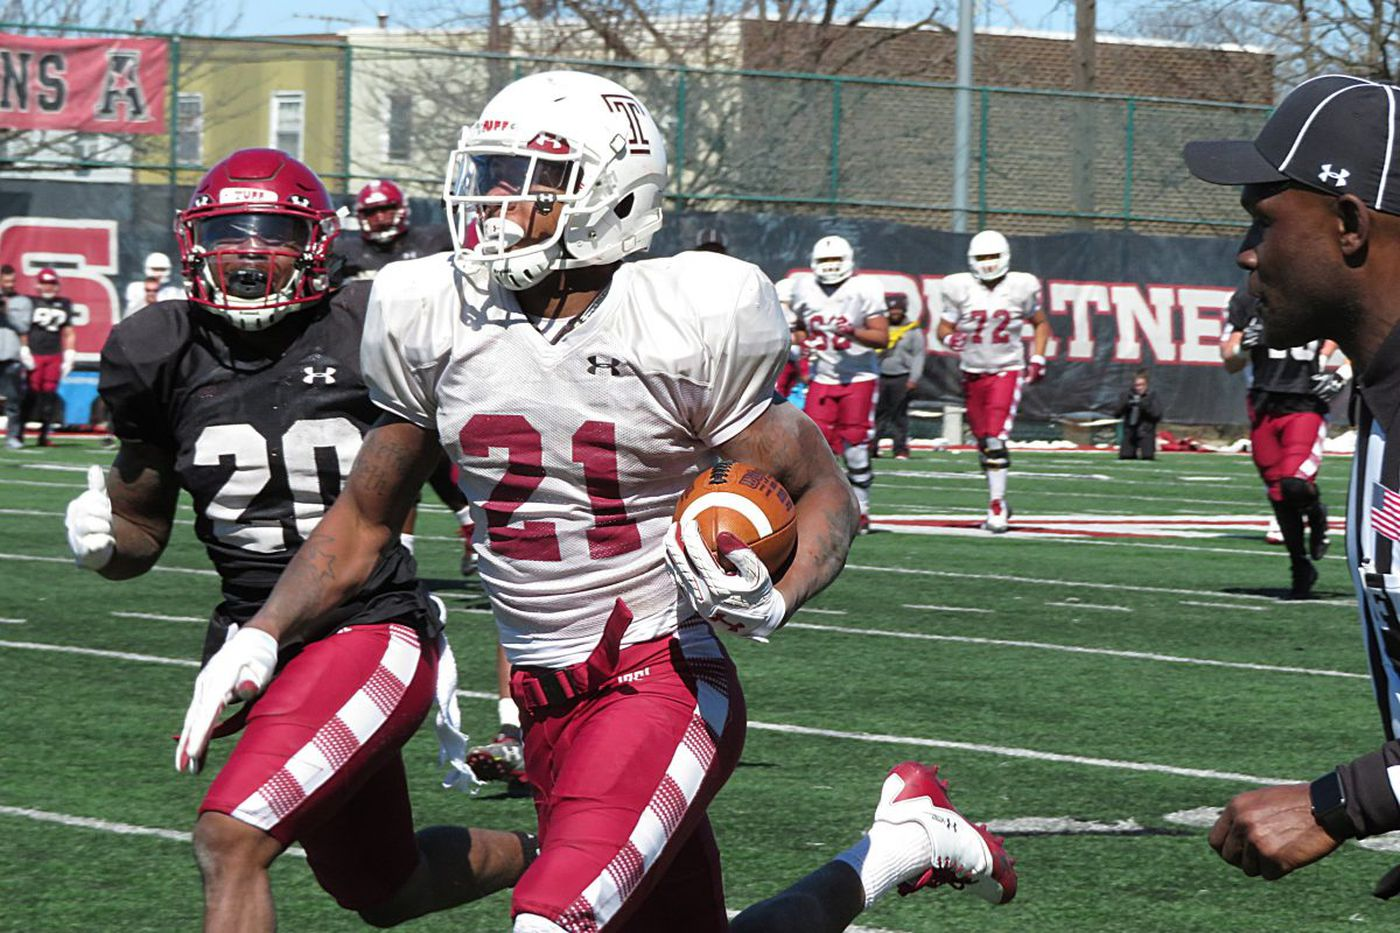 Temple's Jager Gardner working himself back into RB rotation